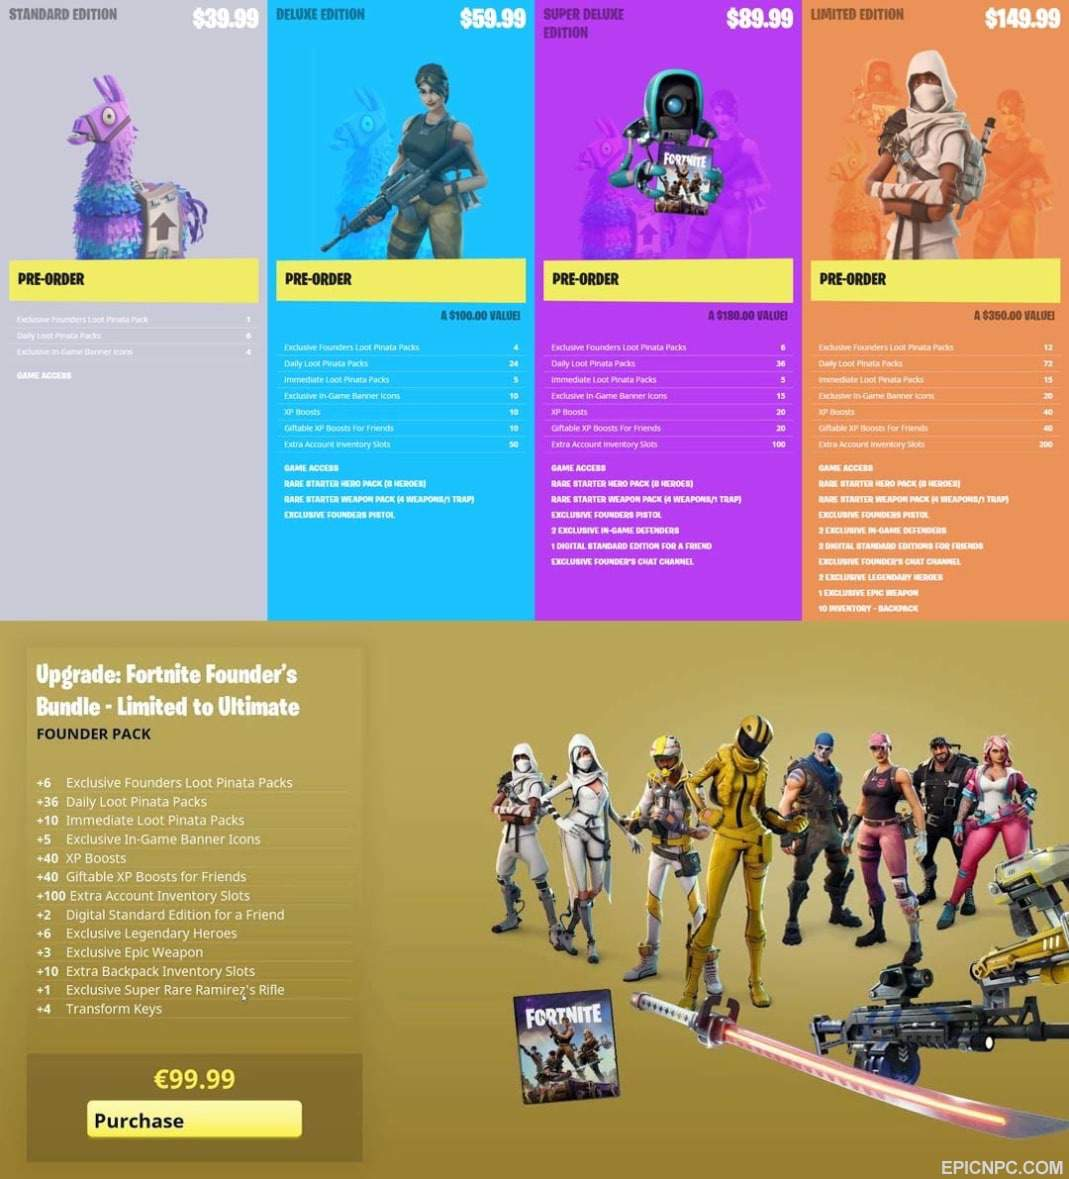 Fortnite Stw Rare Items Save The World All Upgrade Versions Explained Fortnite Battle Royale Armory Amino